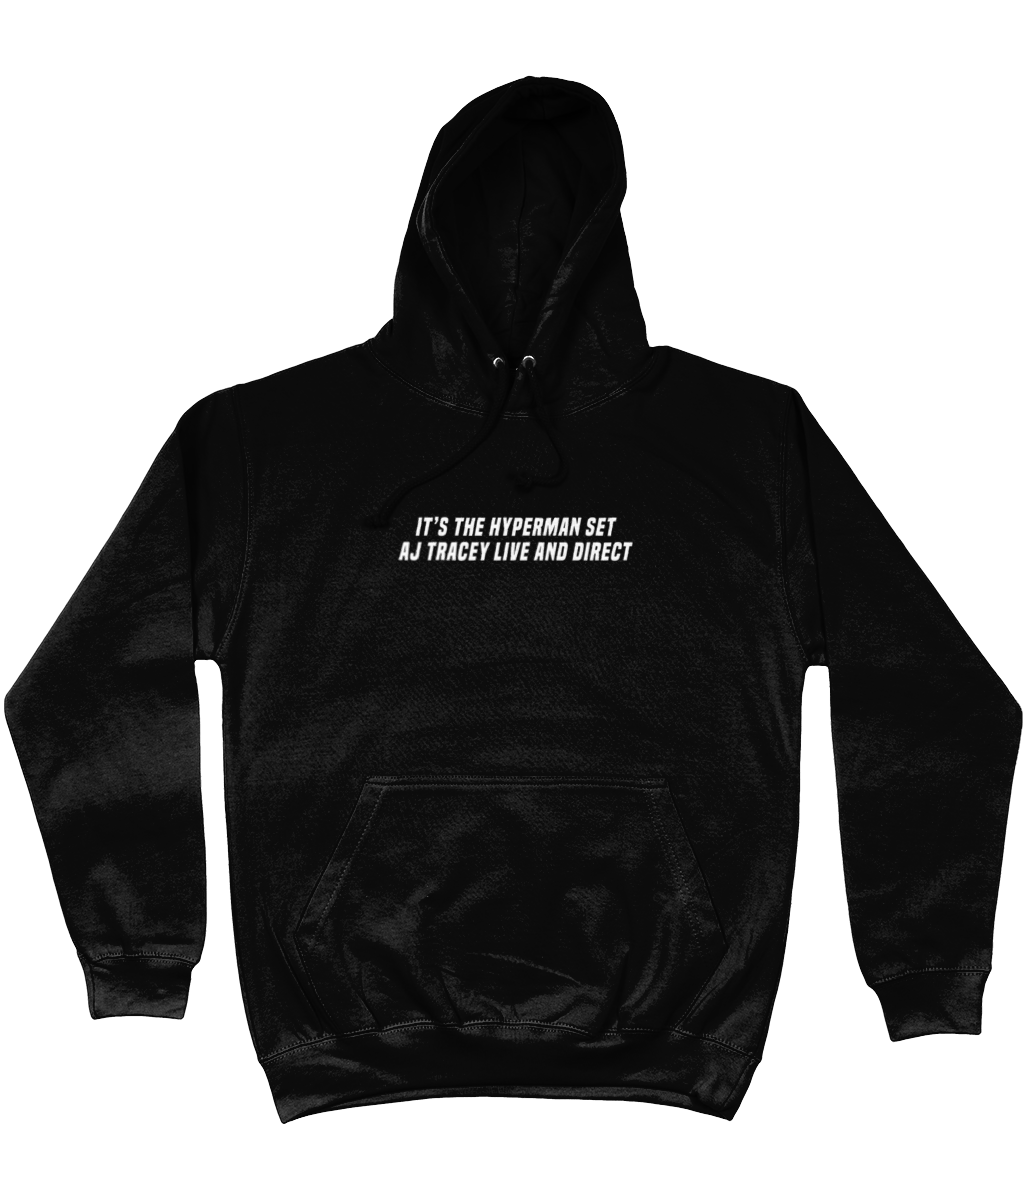 AJ TRACEY LIVE AND DIRECT HOODIE